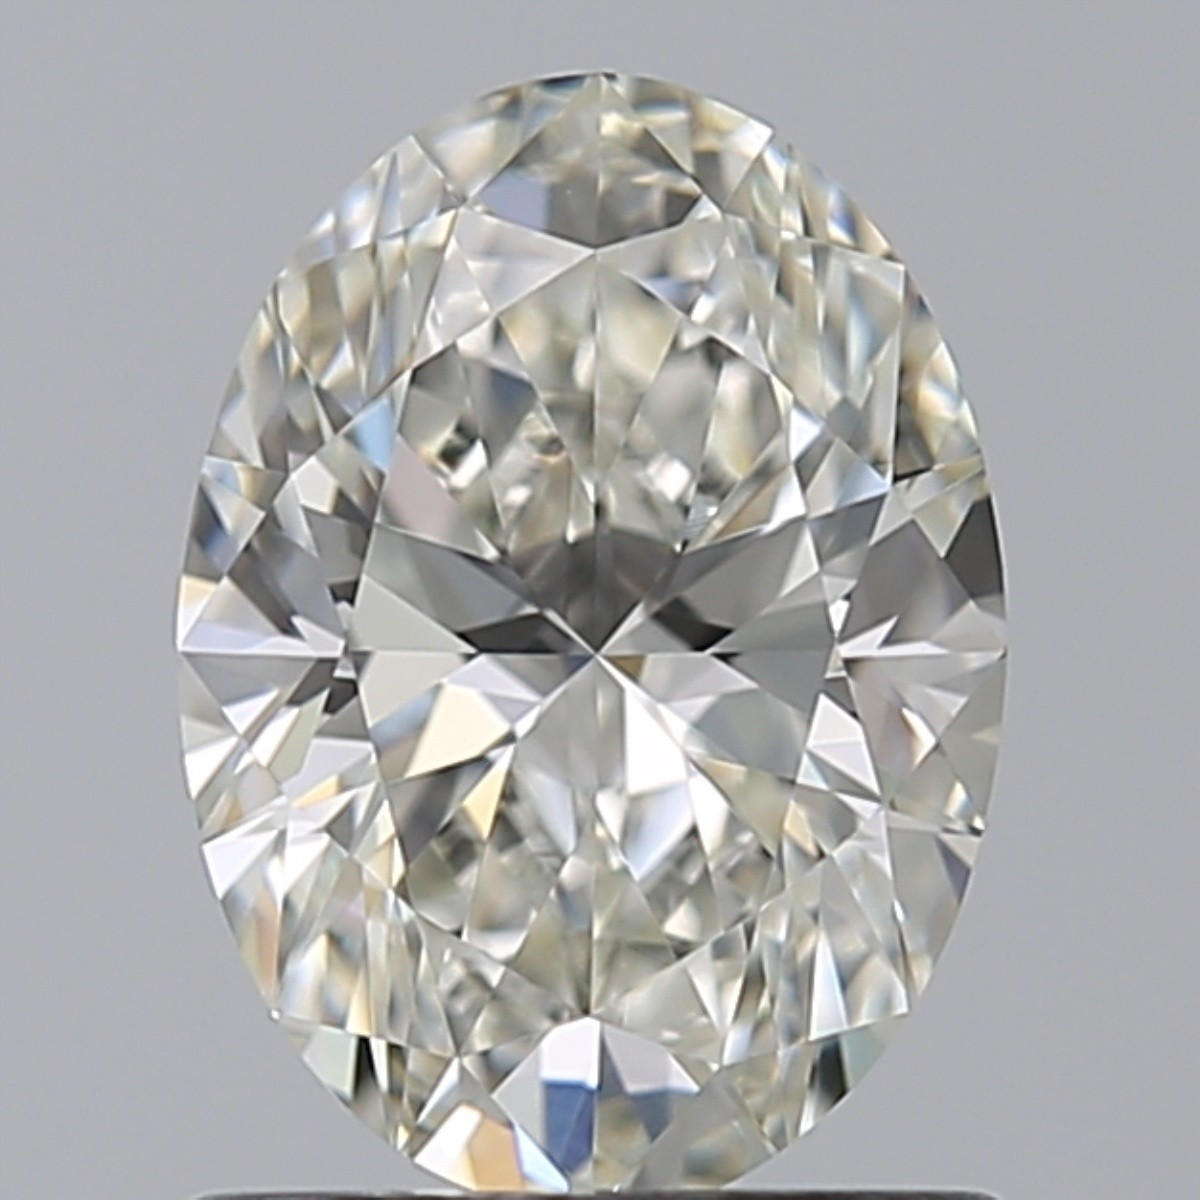 1.01 Carat Oval Diamond (I/VVS2)